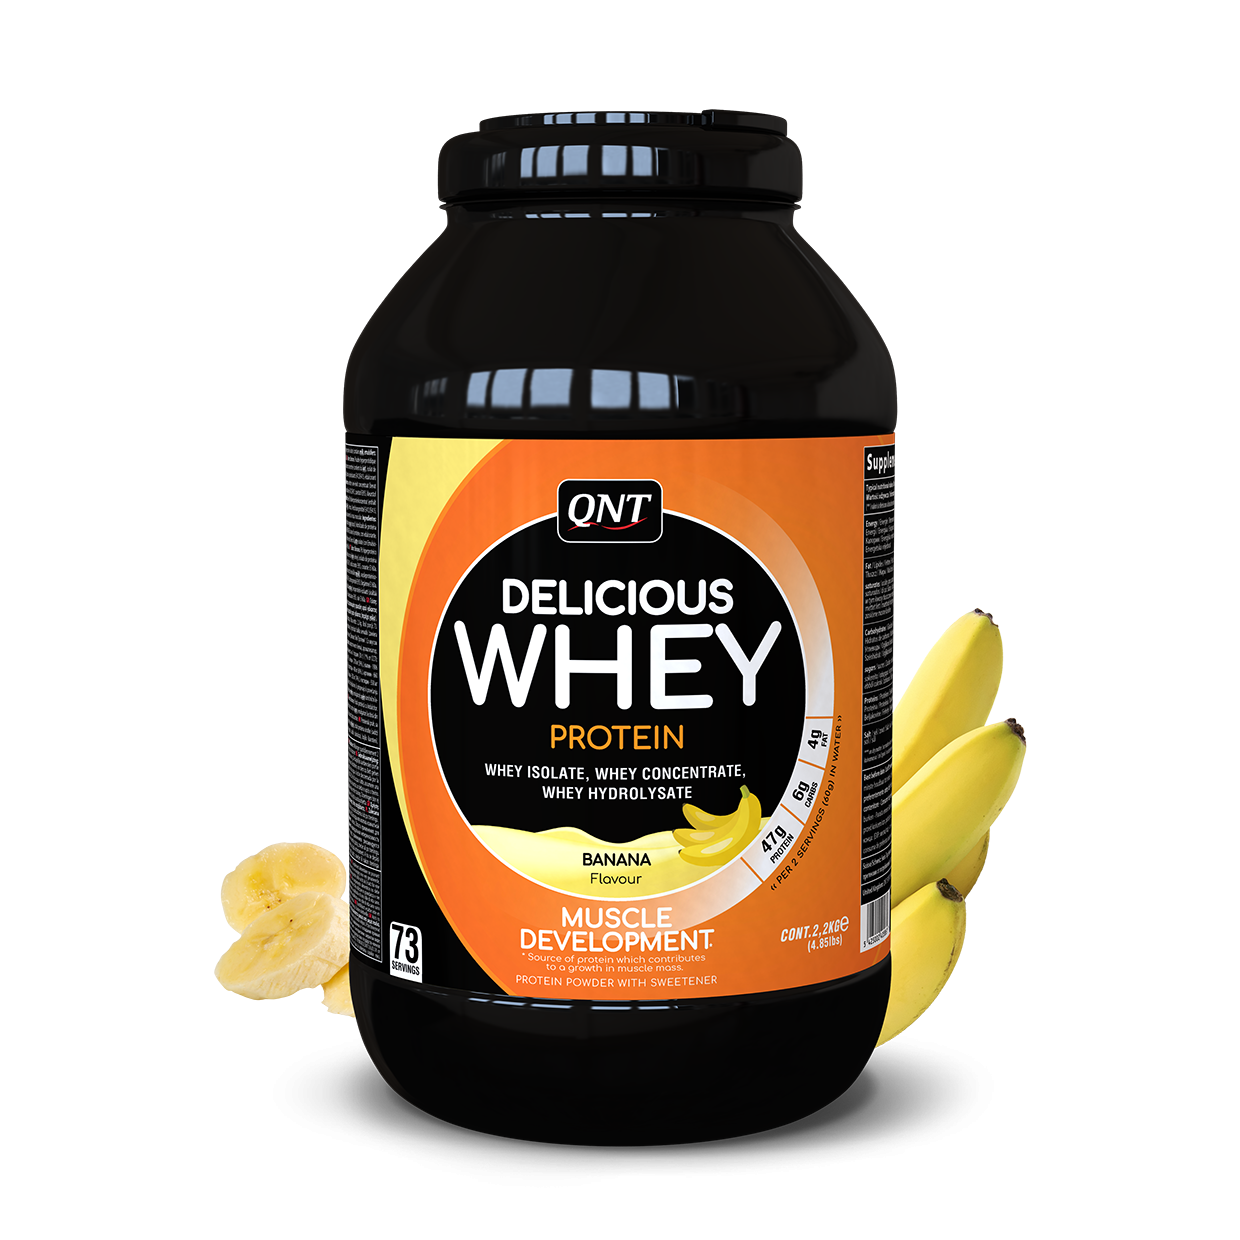 Delicious Whey Protein QNT